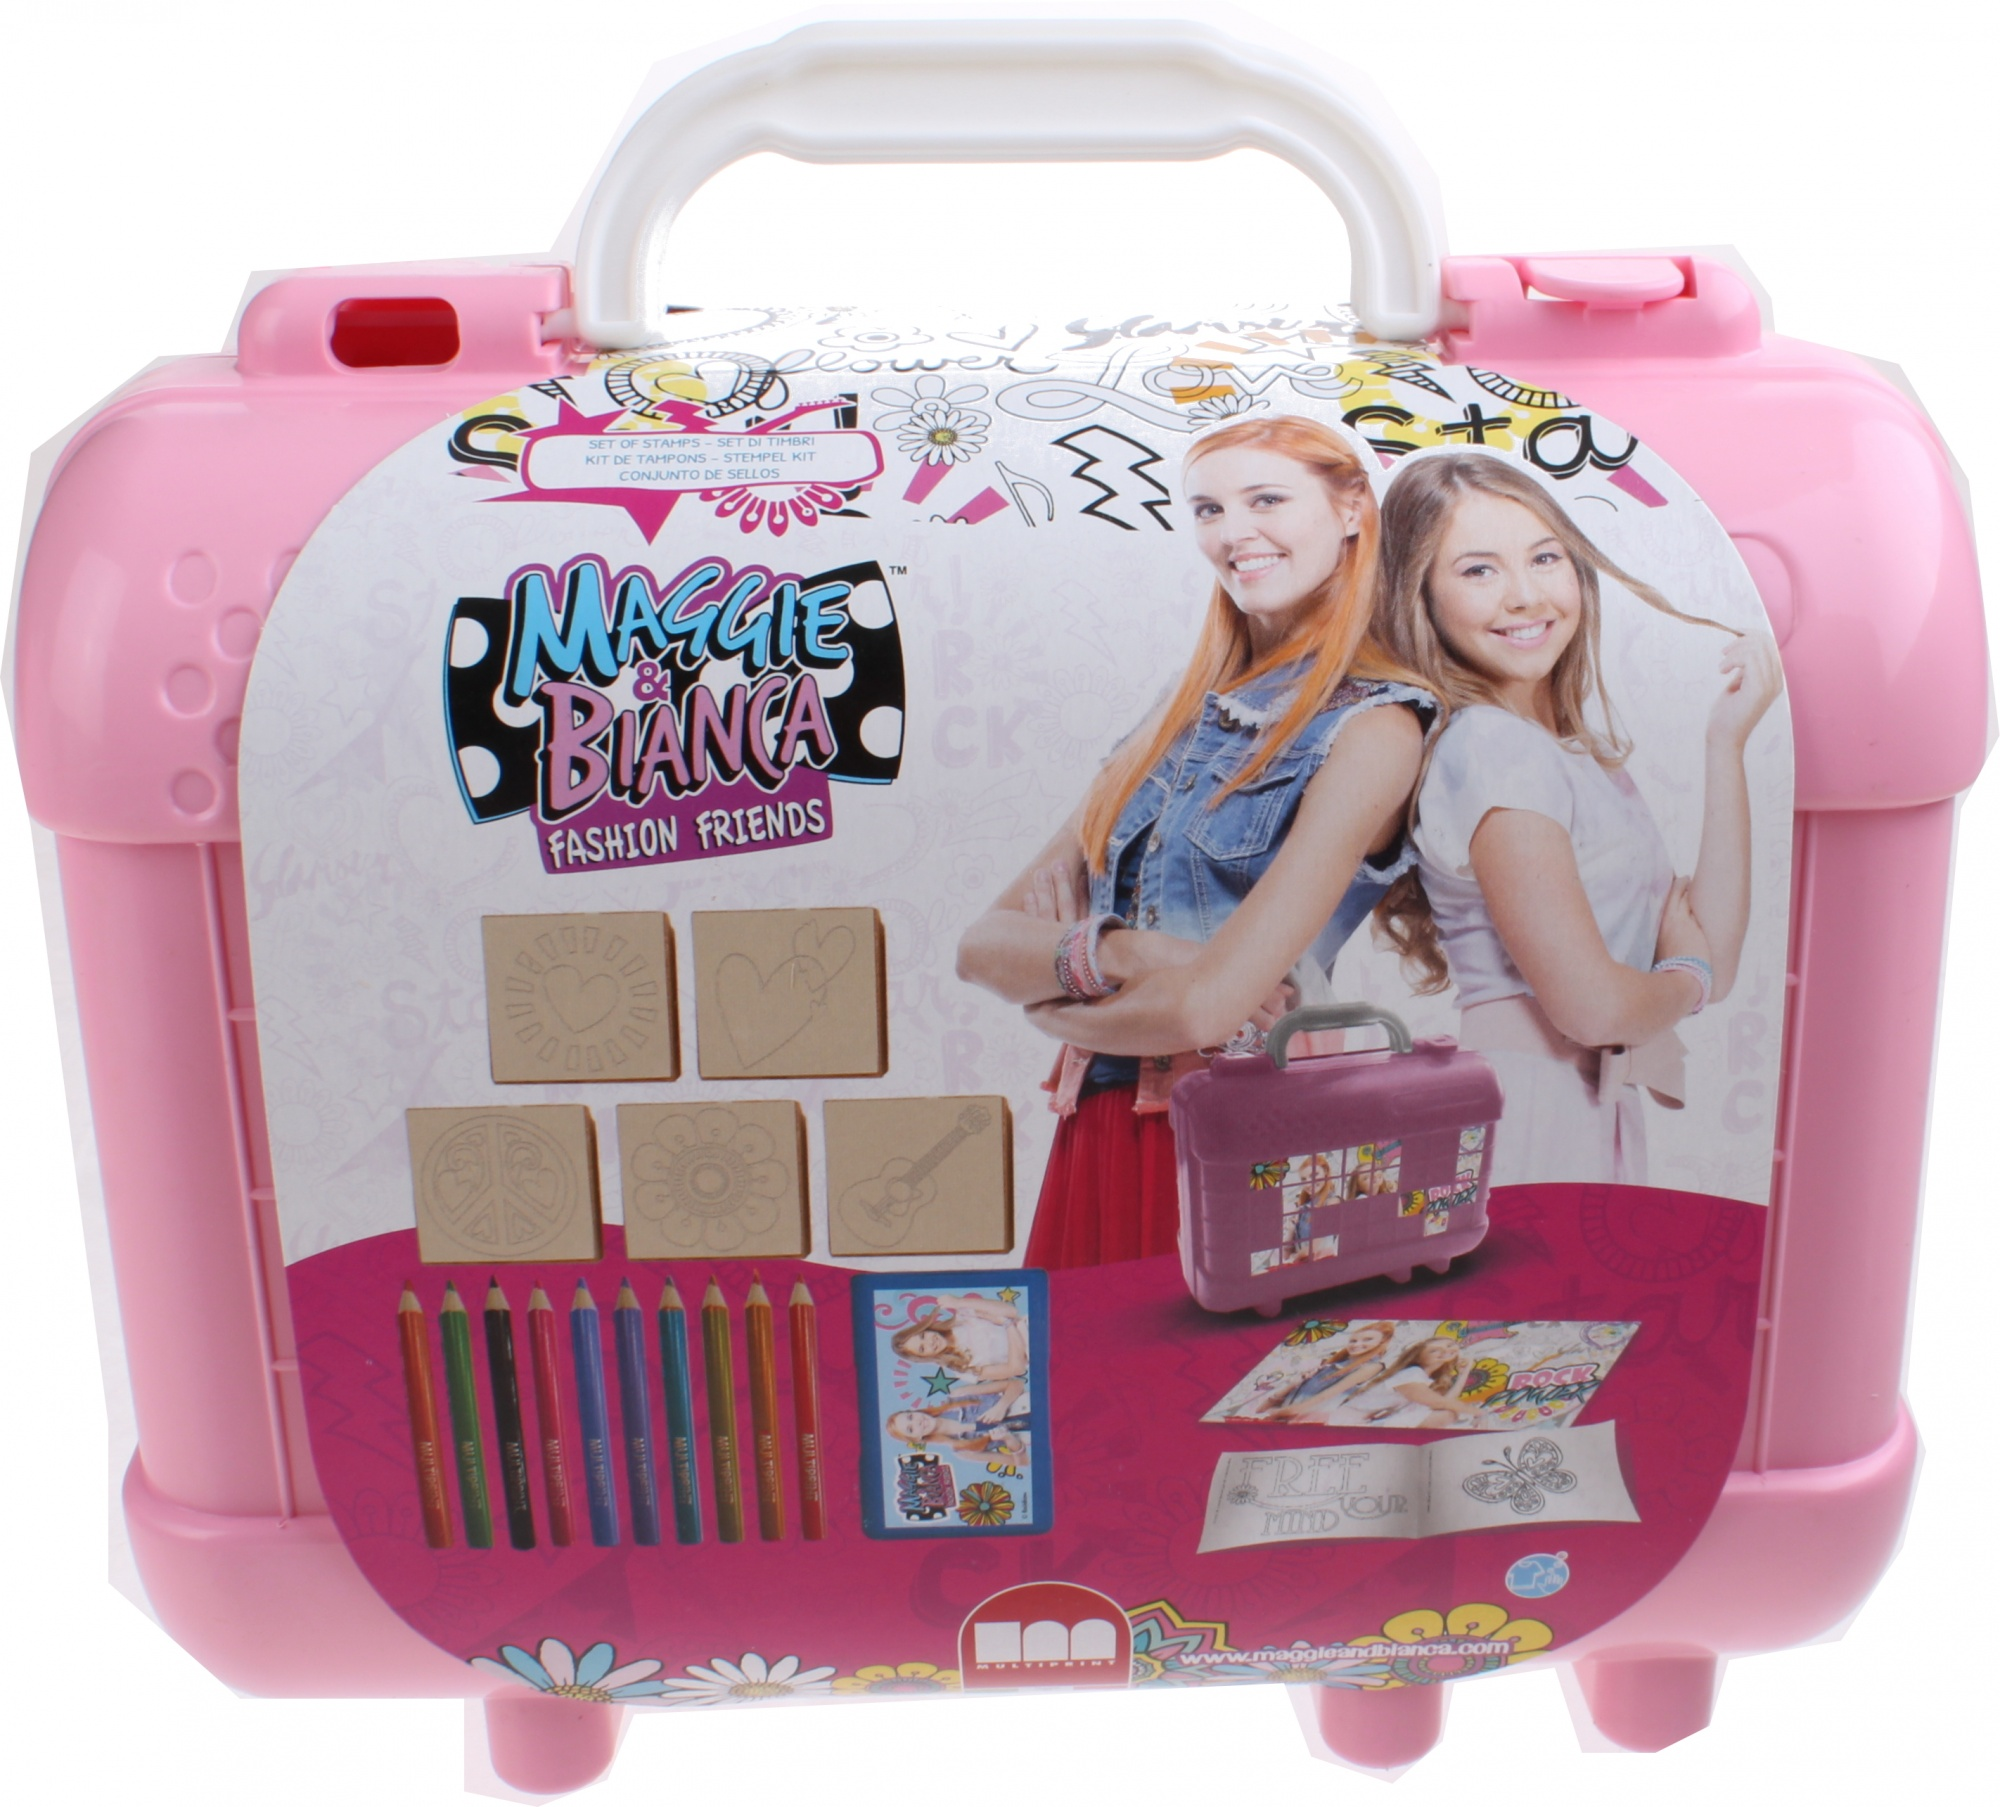 3059ee5a47 Multiprint coloring set Maggie & Bianca 19-piece pink - Internet-Toys